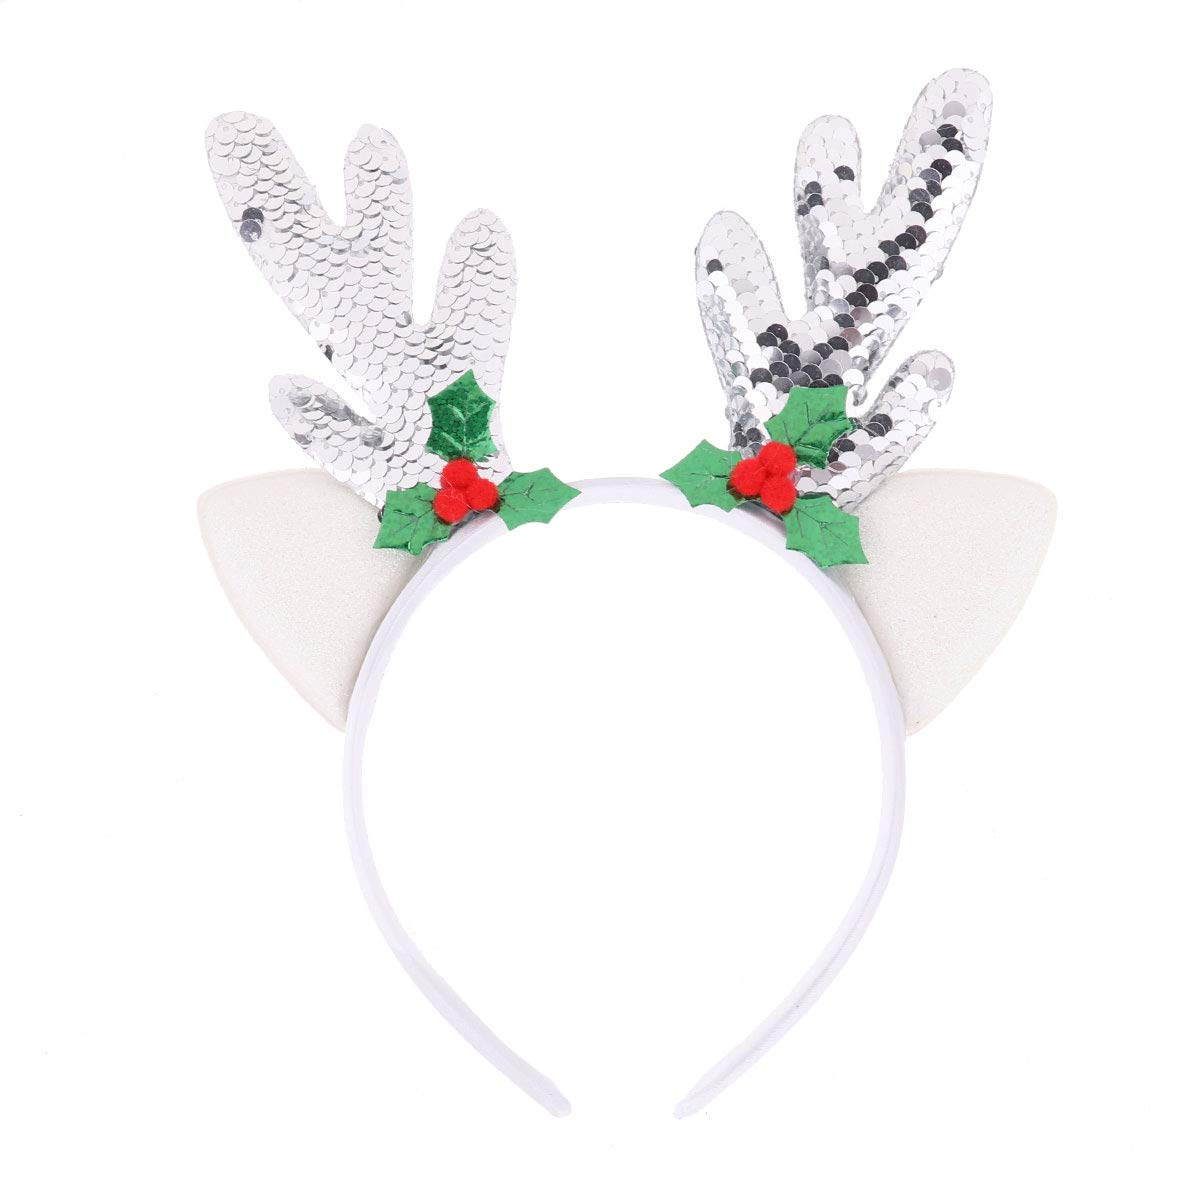 FEESHOW Christmas Headband, Reindeer Antlers Hair Hoop Headwear for Children Christmas Costume Party Type A Silver One Size